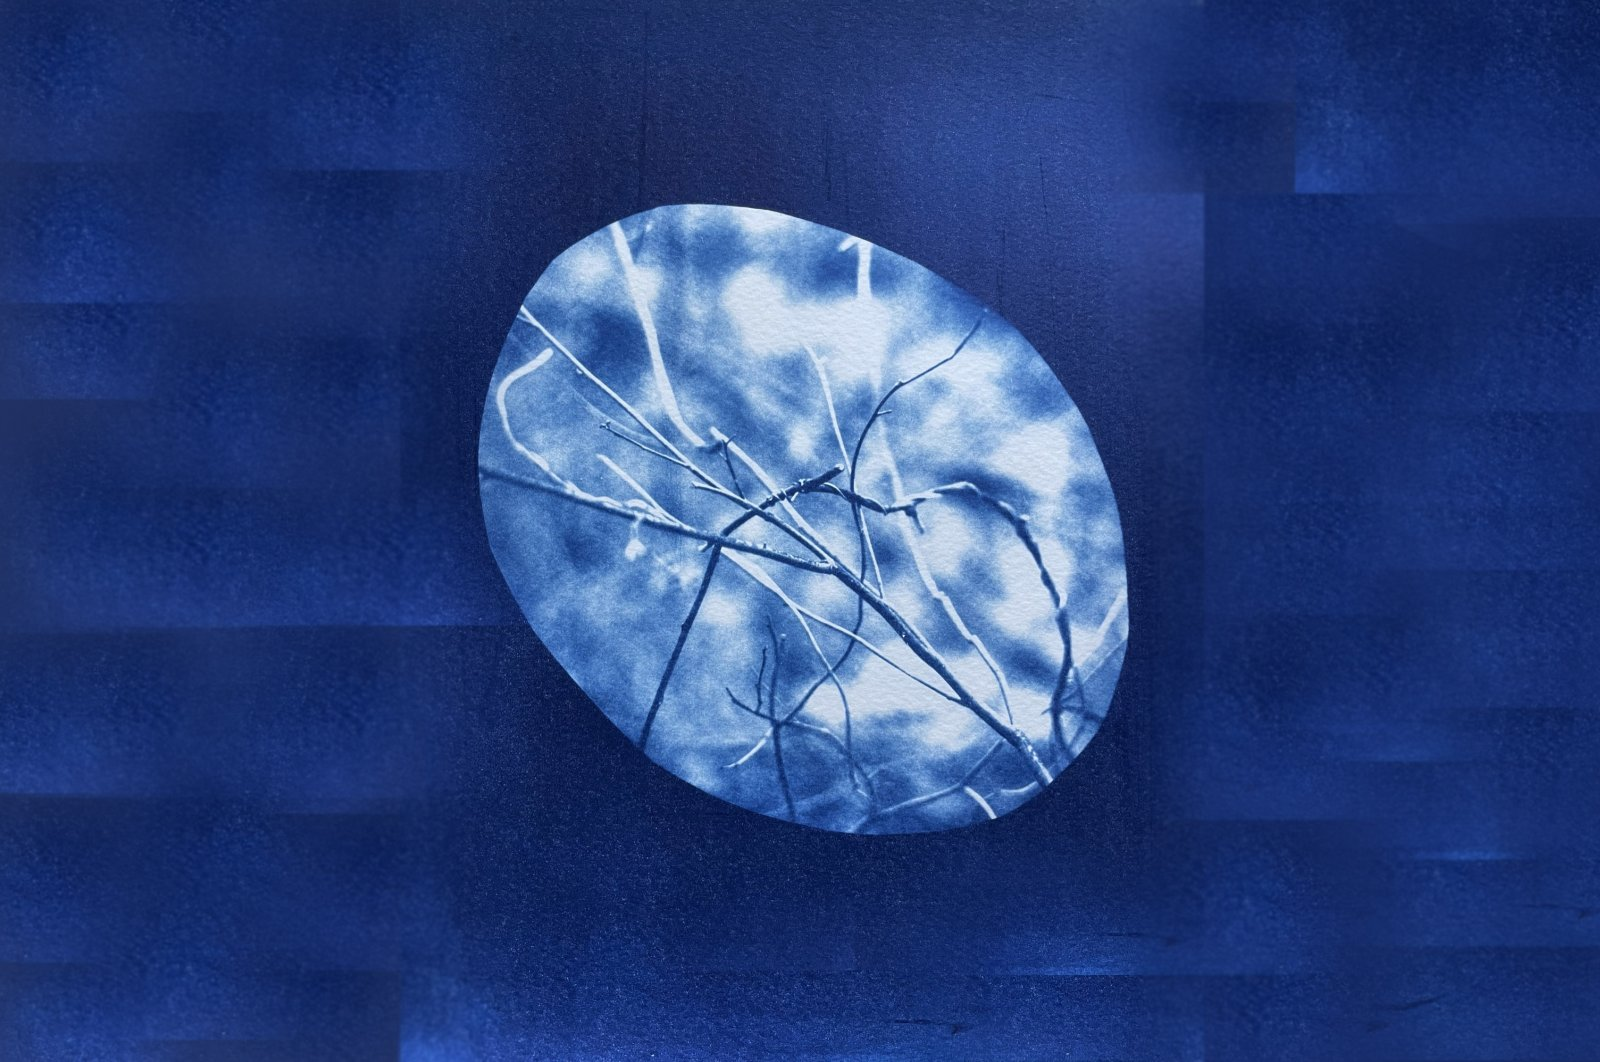 """Aslı Narin, """"Signals and Exchanges 15,"""" 2021, cyanotype printing on watercolor paper, 22 by 9 by 30 centimeters."""